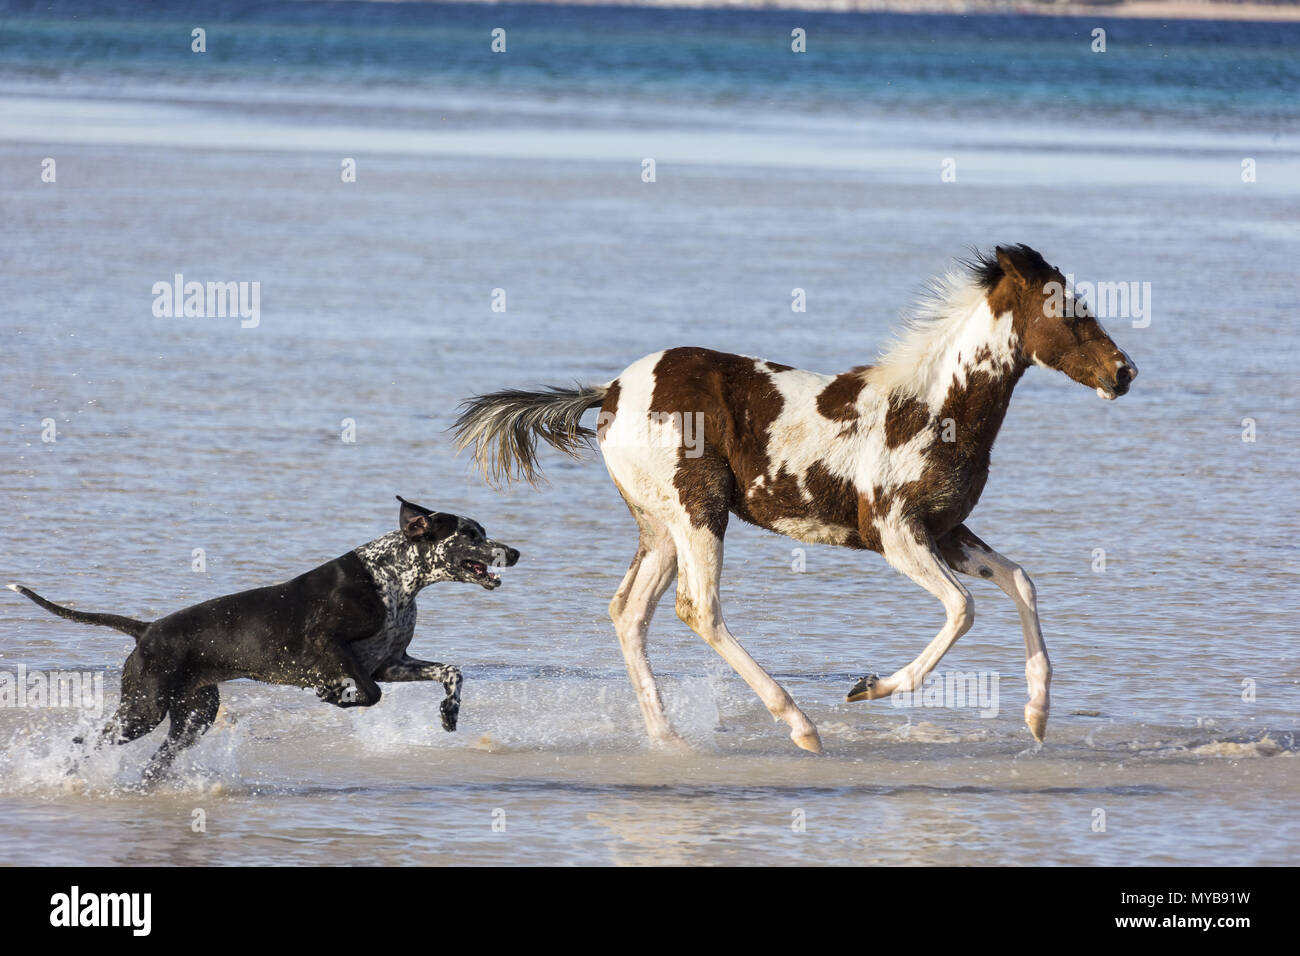 Pinto. Foal galloping in shallow water, followed by a dog. Egypt. Stock Photo